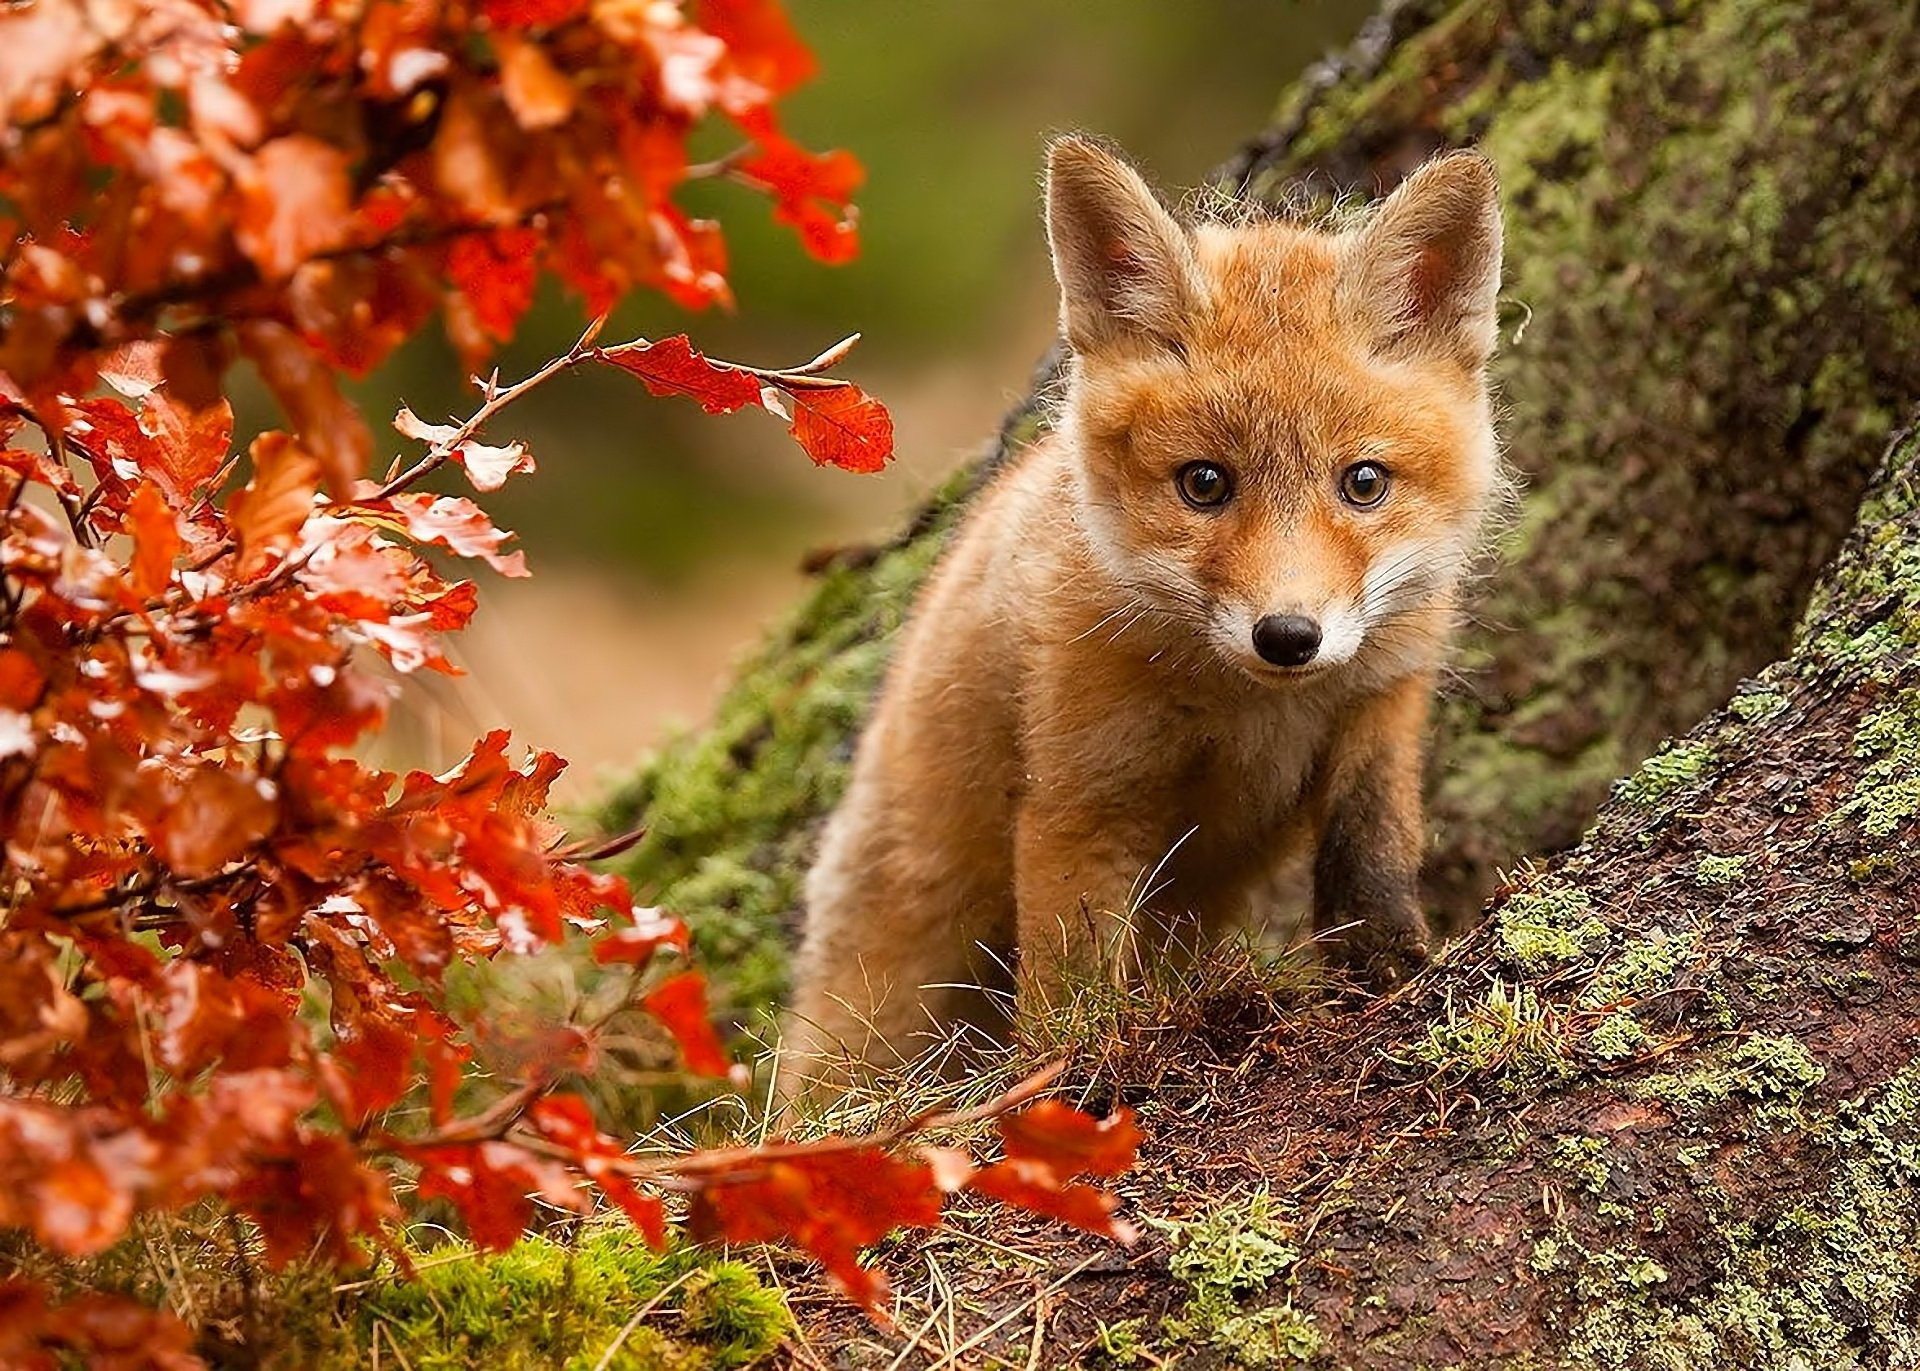 Res: 1920x1371, Nature fox fall leaves posture eyes wallpaper |  | 356324 |  WallpaperUP